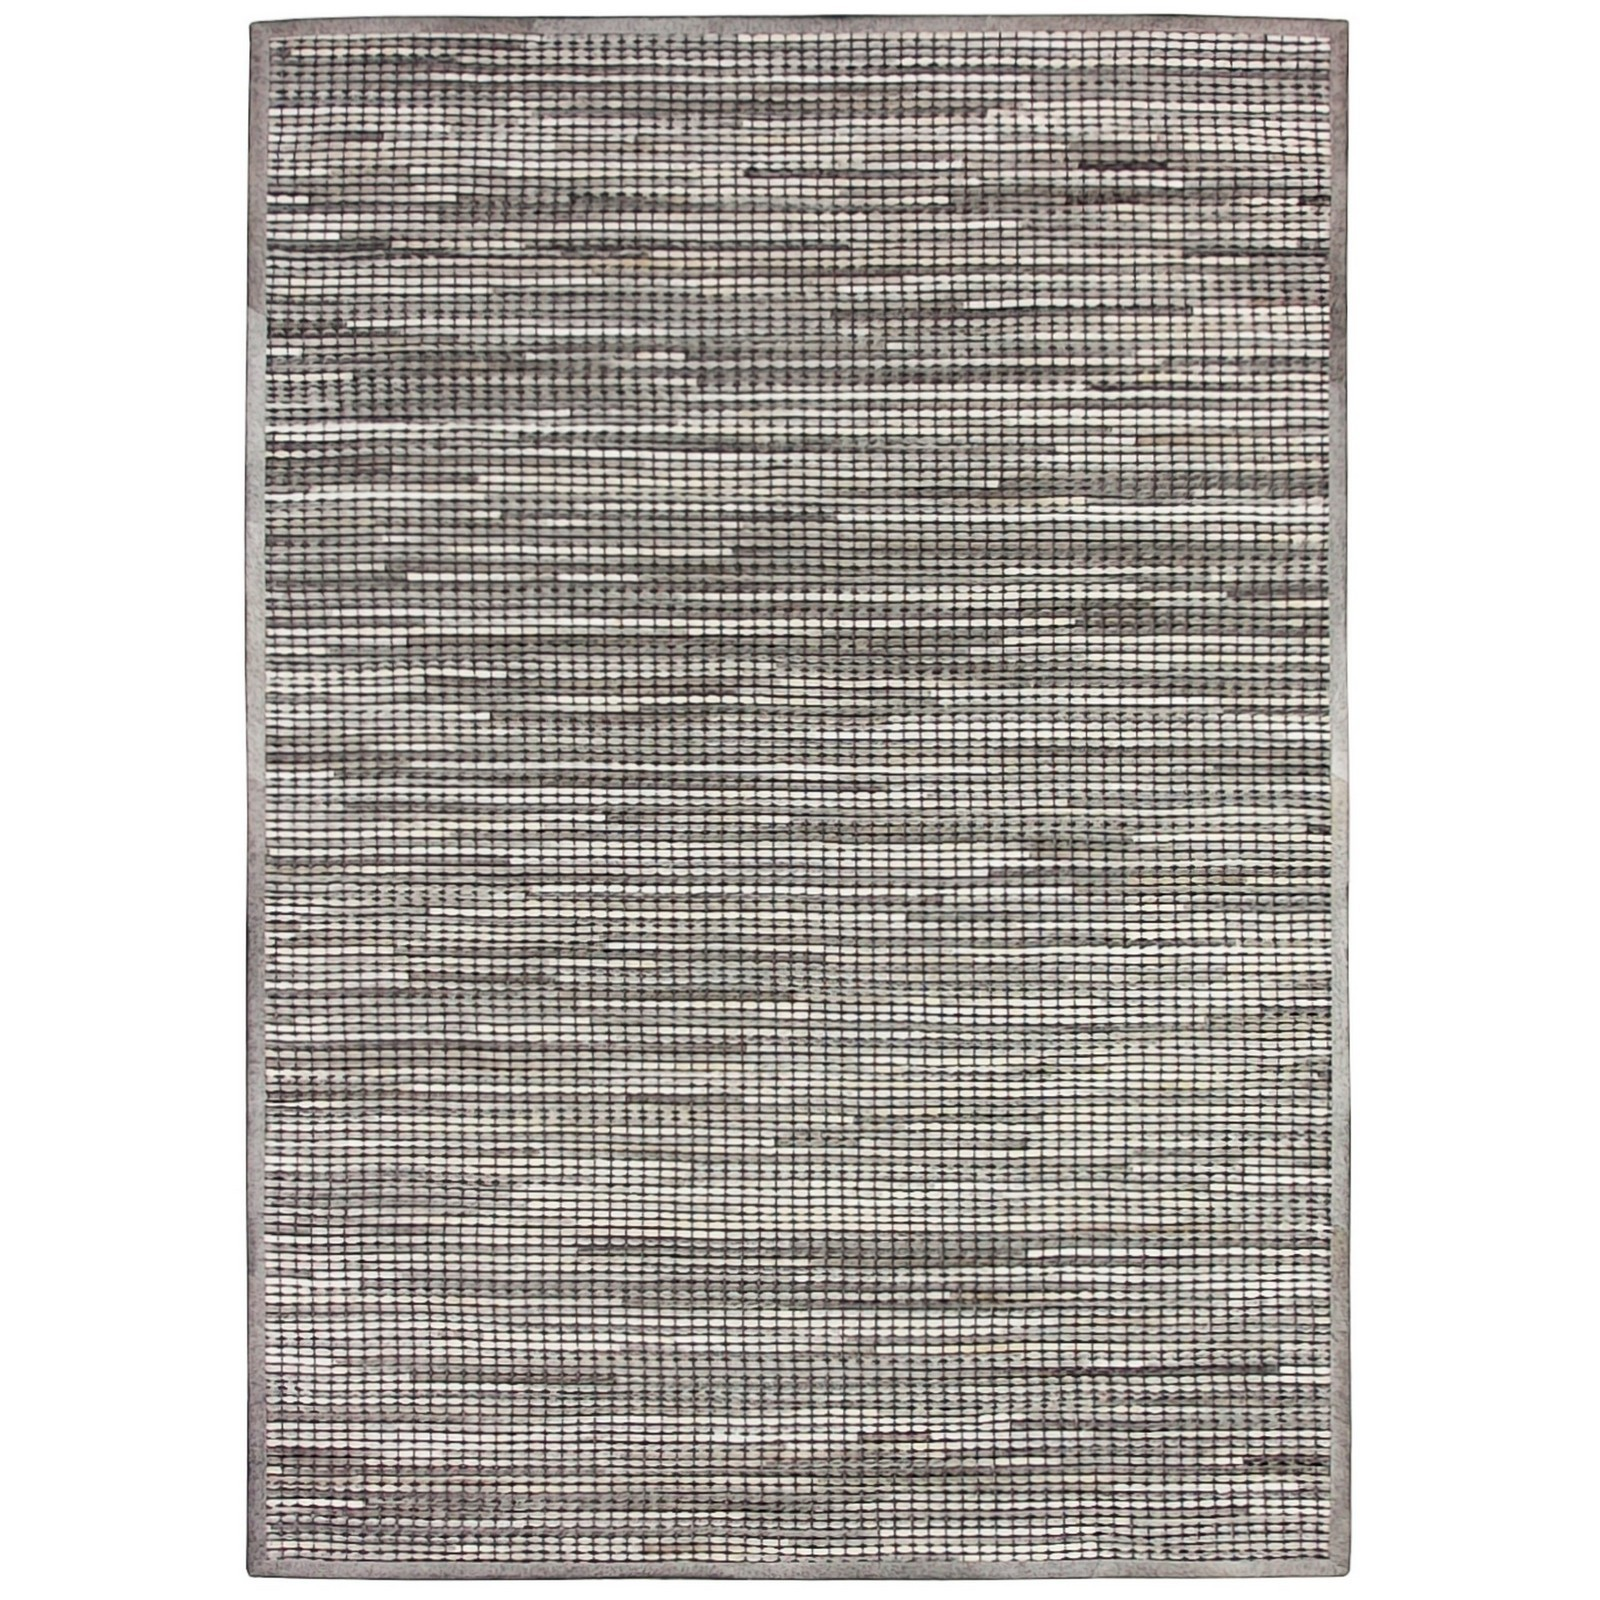 Chase Handwoven Hide & Leather Rug, 200x300cm, Grey